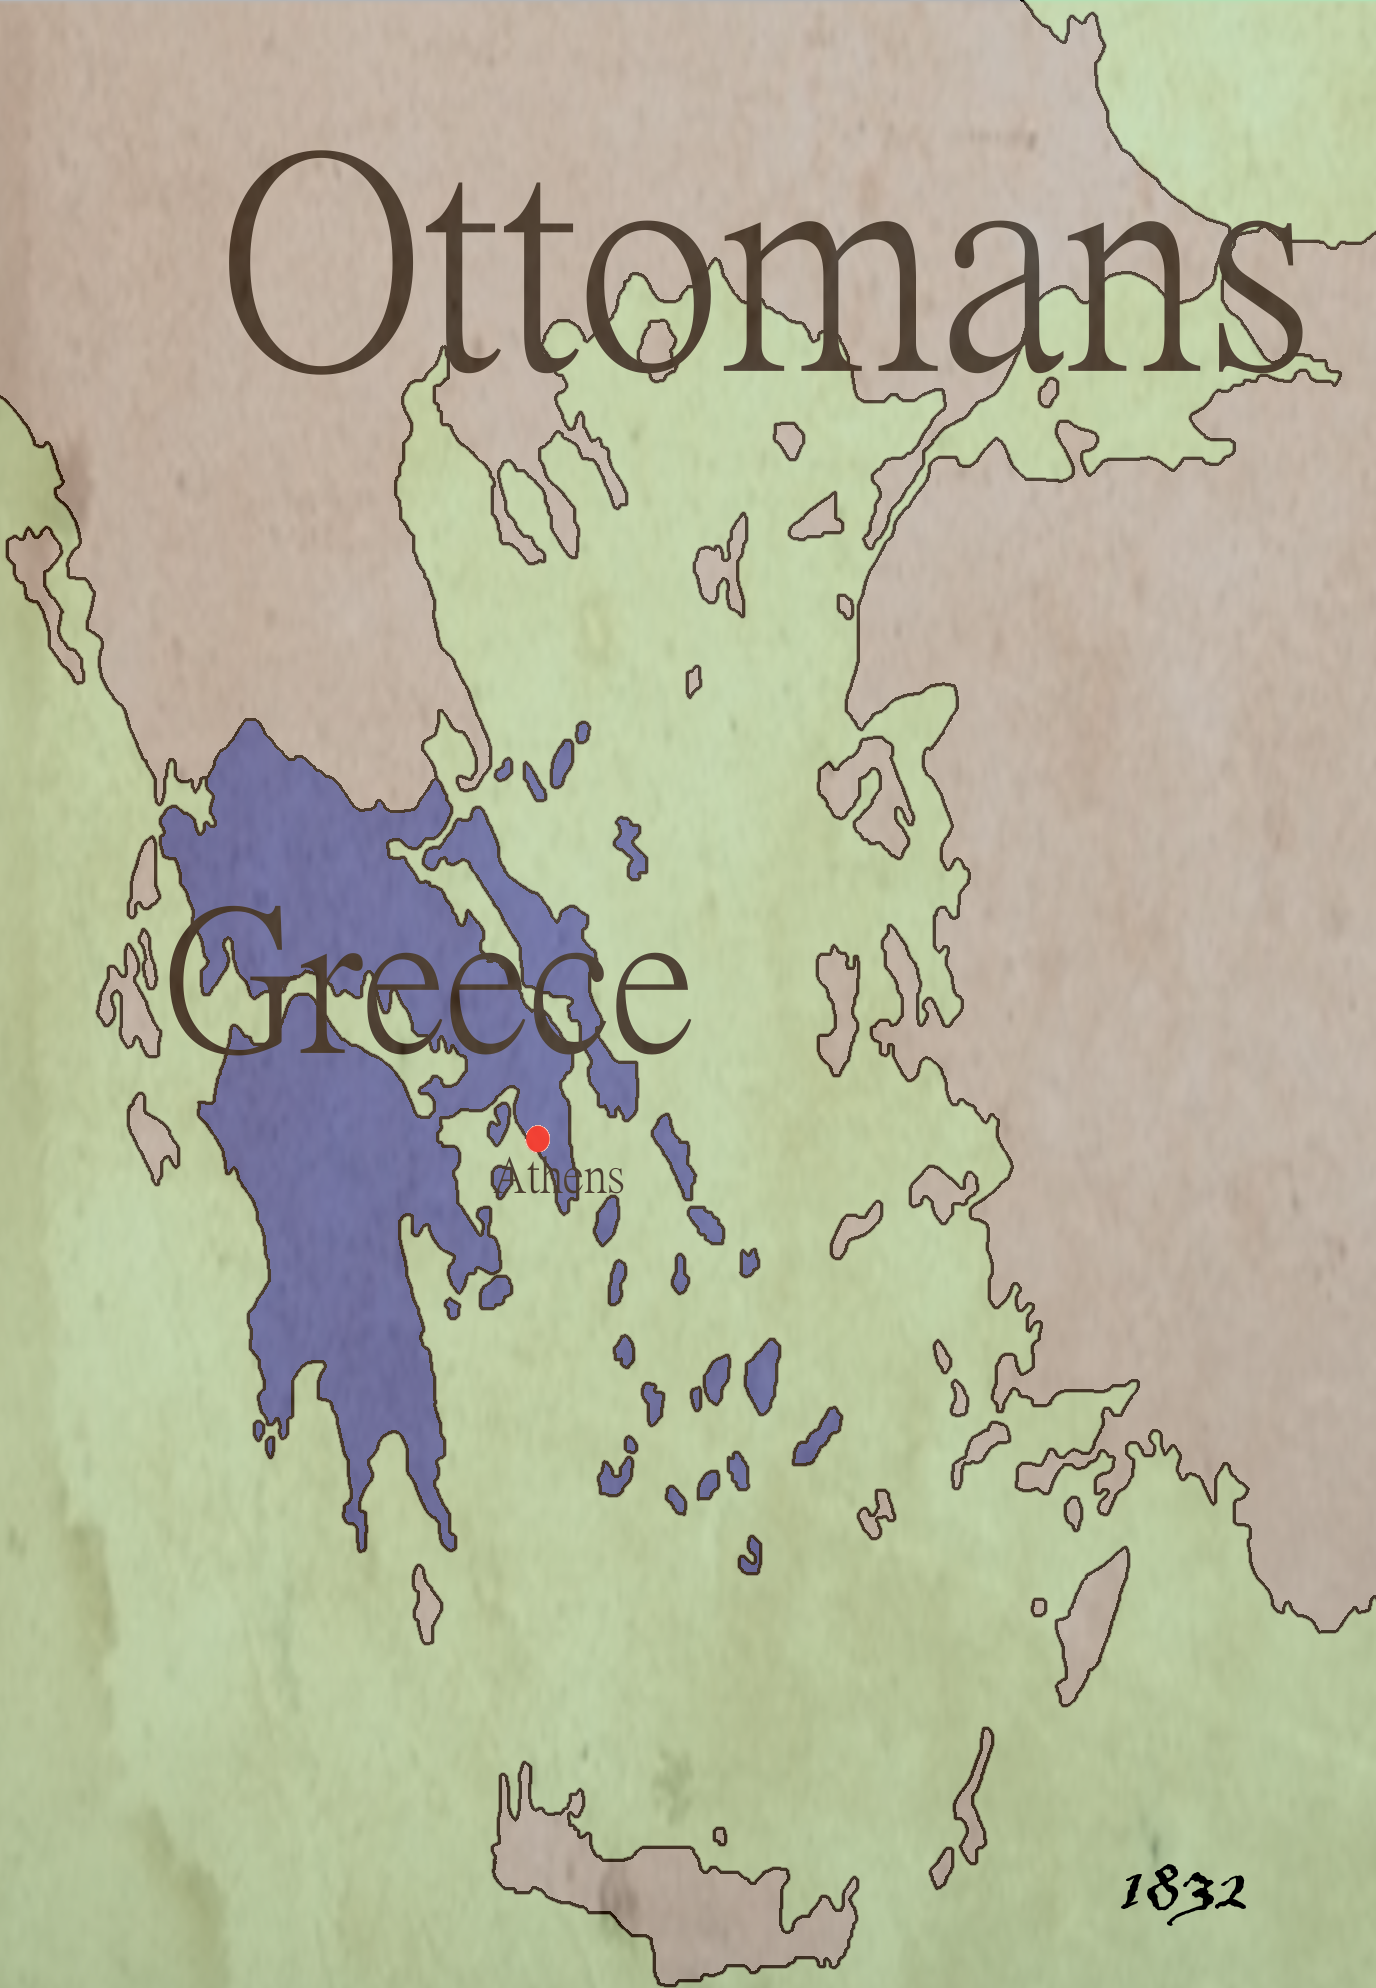 File:Kingdom of Greece 1832.png - Wikimedia Commons on empire of japan map, kingdom of poland map, grand duchy of tuscany map, ptolemaic kingdom map, kingdom of denmark map, ancient greece map, confederate states of america map, republic of colombia map,